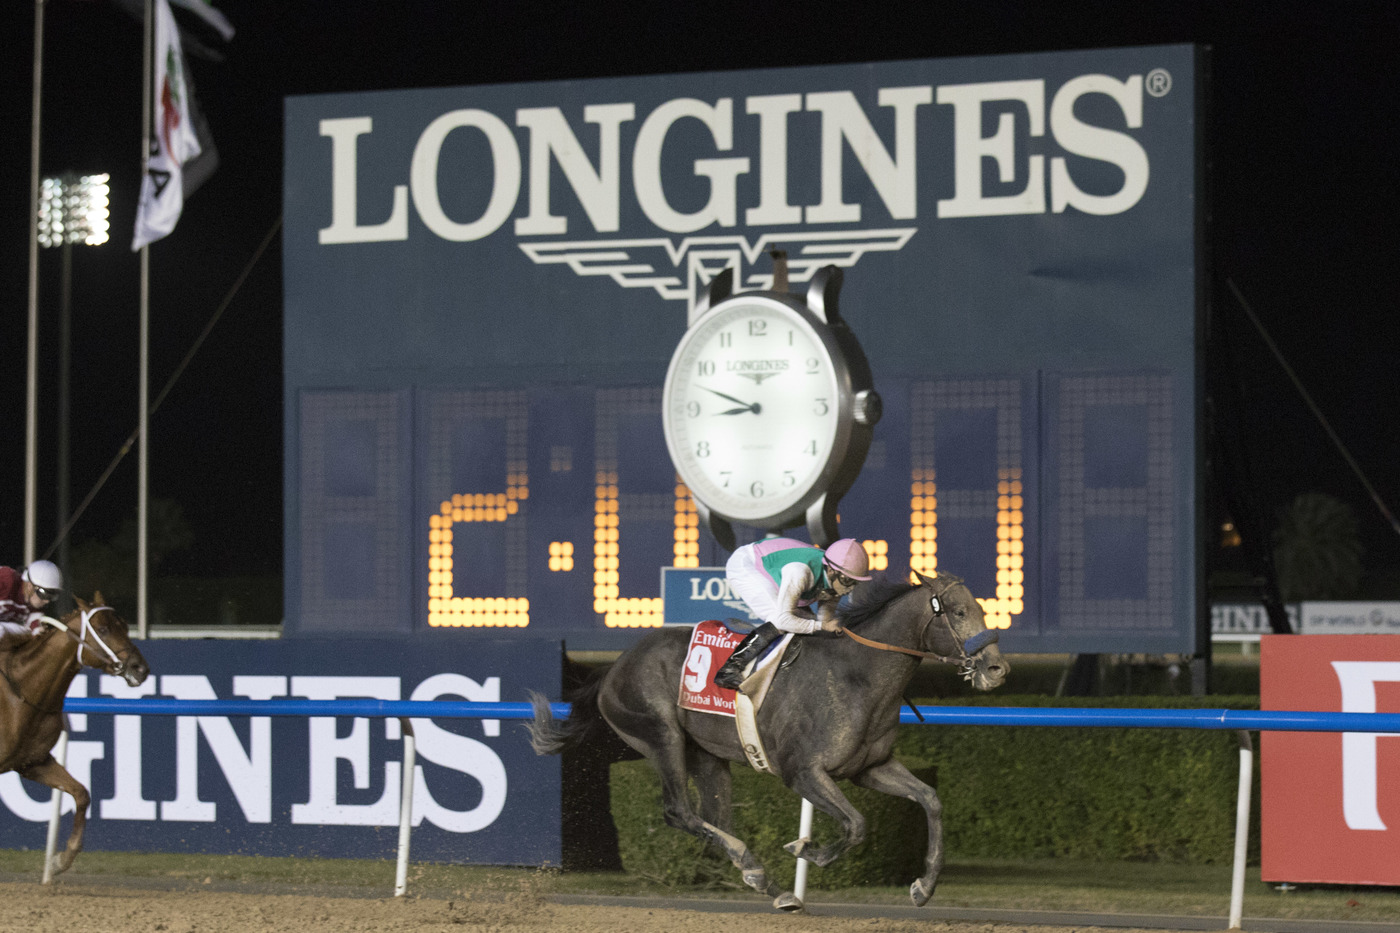 Longines Flat Racing Event: Arrogate, the 2016 Longines World's Best Racehorse, won the Dubai World Cup 2